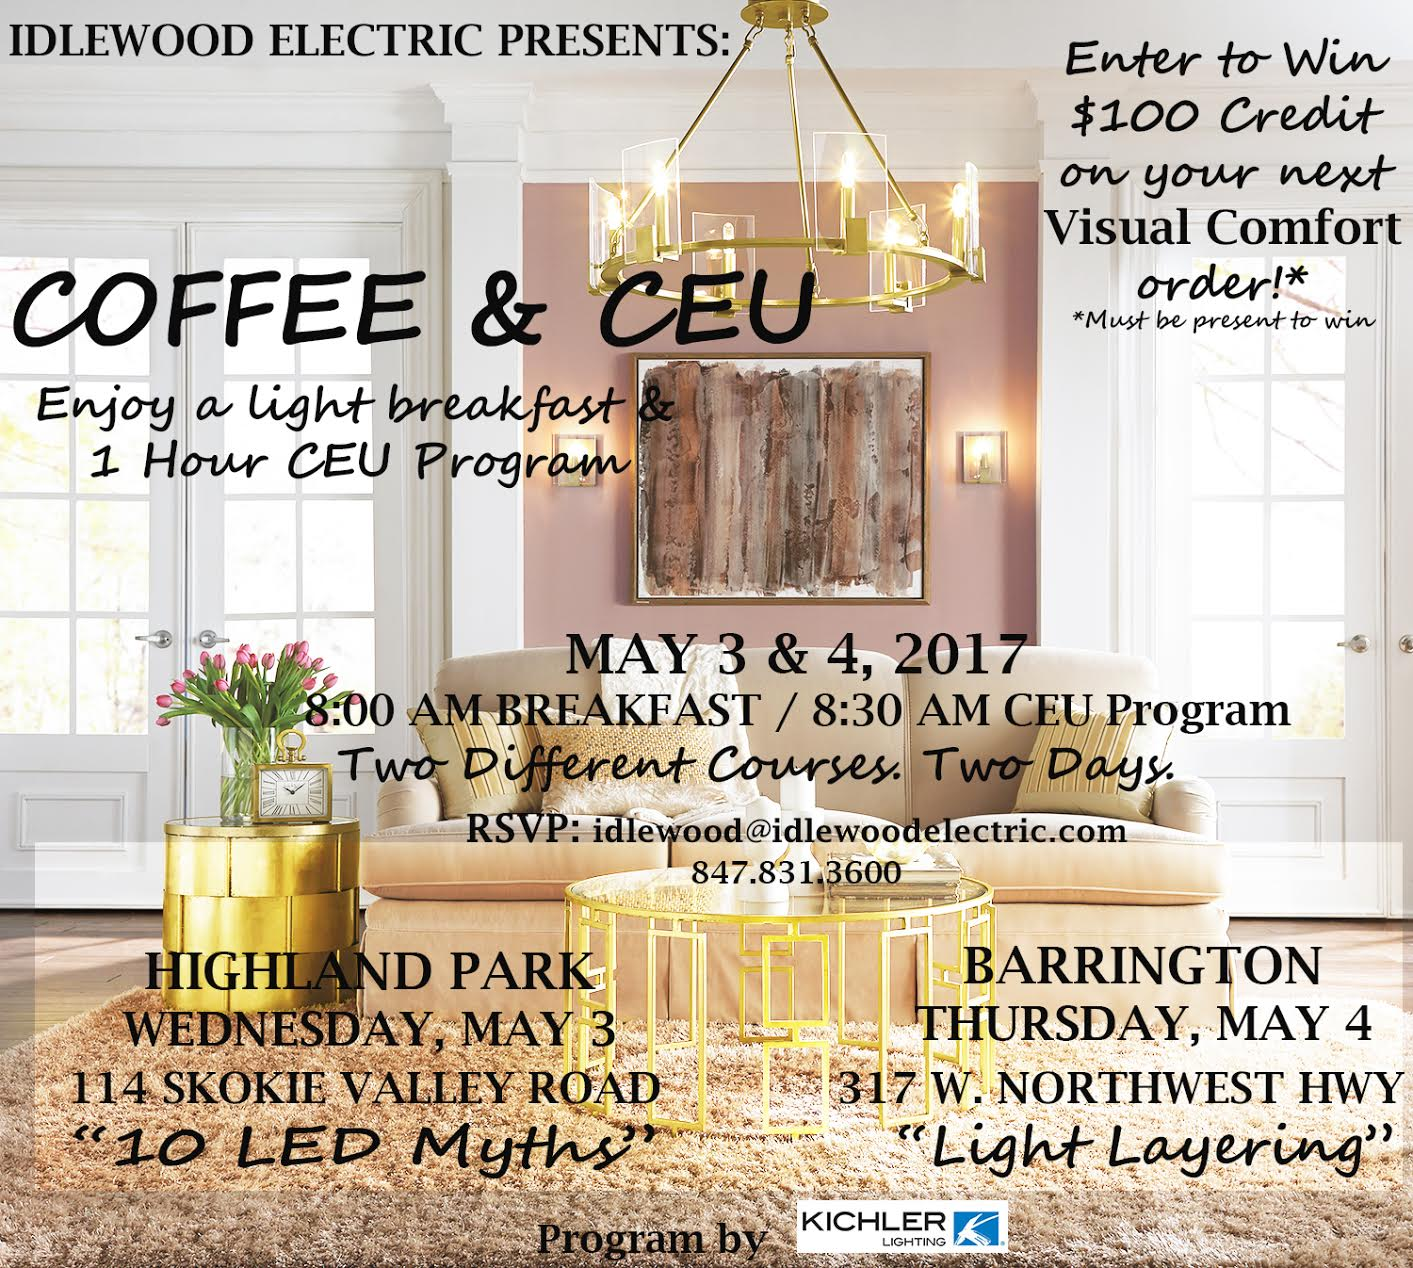 Youu0027re Invited to Idlewood Electricu0027s u201cCoffee u0026 CEUu201d programs on Wednesday May 3rd and Thursday May 4th for a complimentary breakfast and 1-hour CEU ...  sc 1 st  Idlewood Electric & Lighting u0026 Electric Supply Events in Chicago | Idlewood azcodes.com